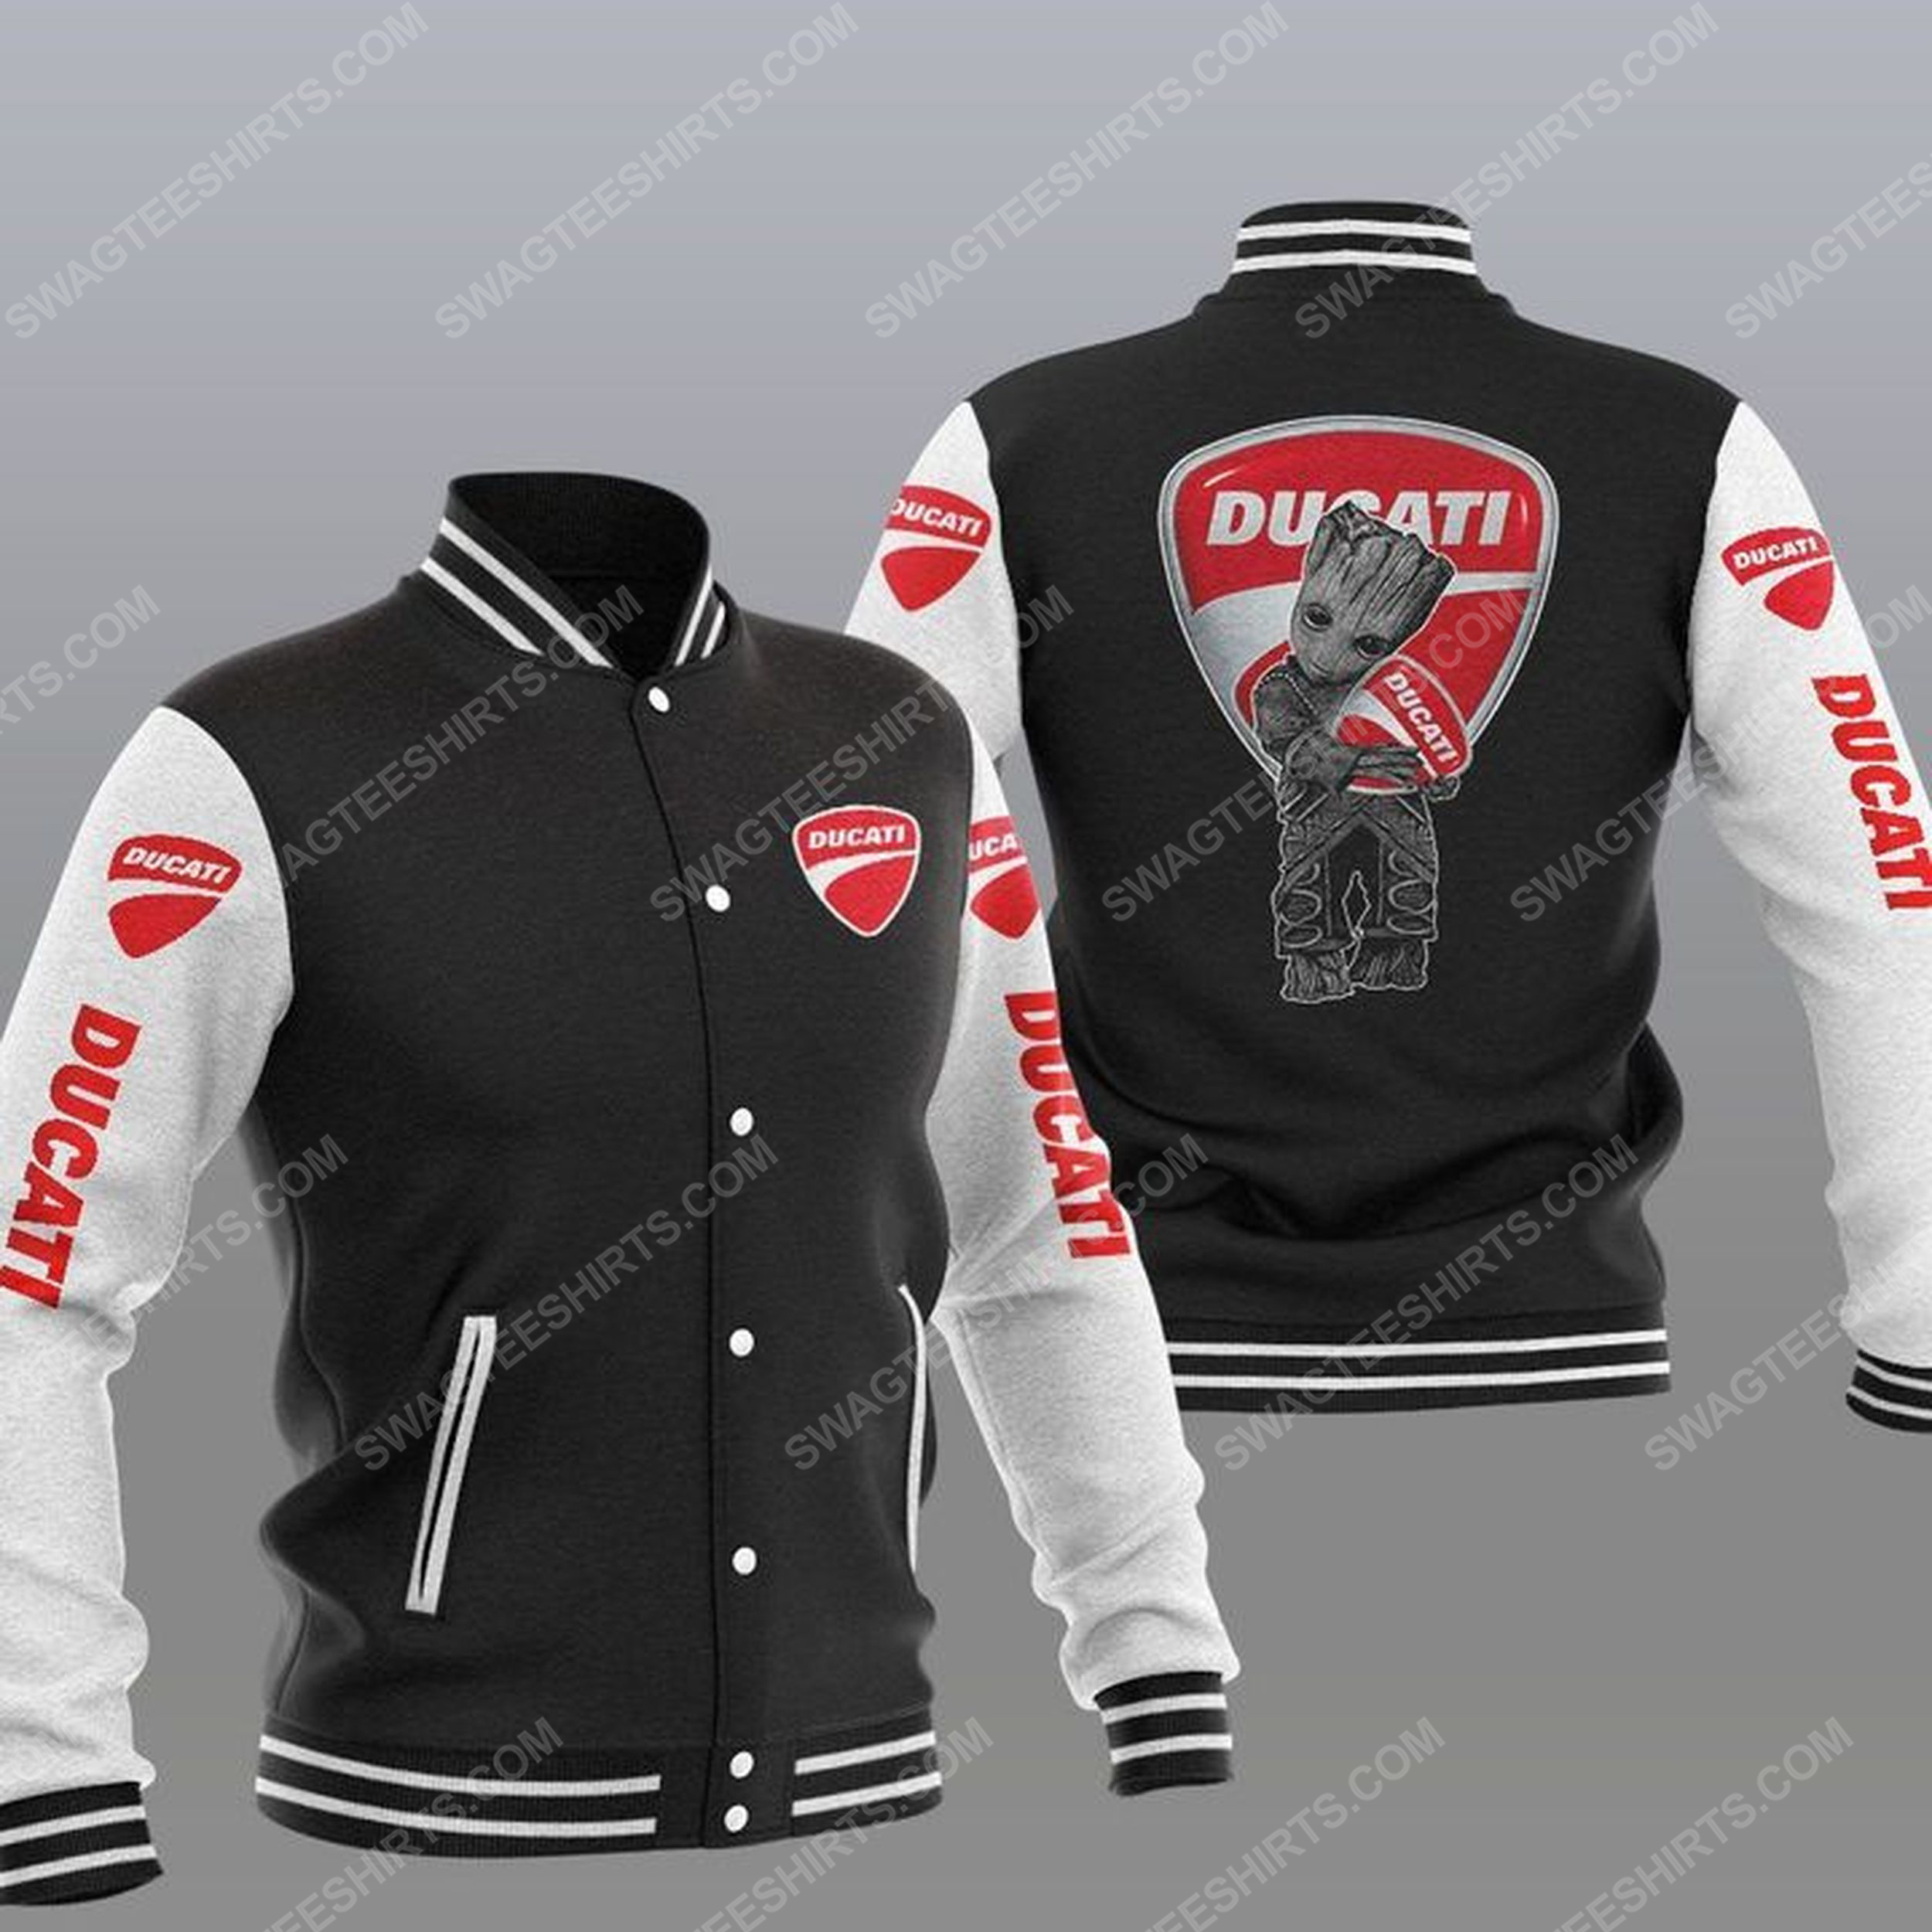 Baby groot and ducati all over print baseball jacket - black 1